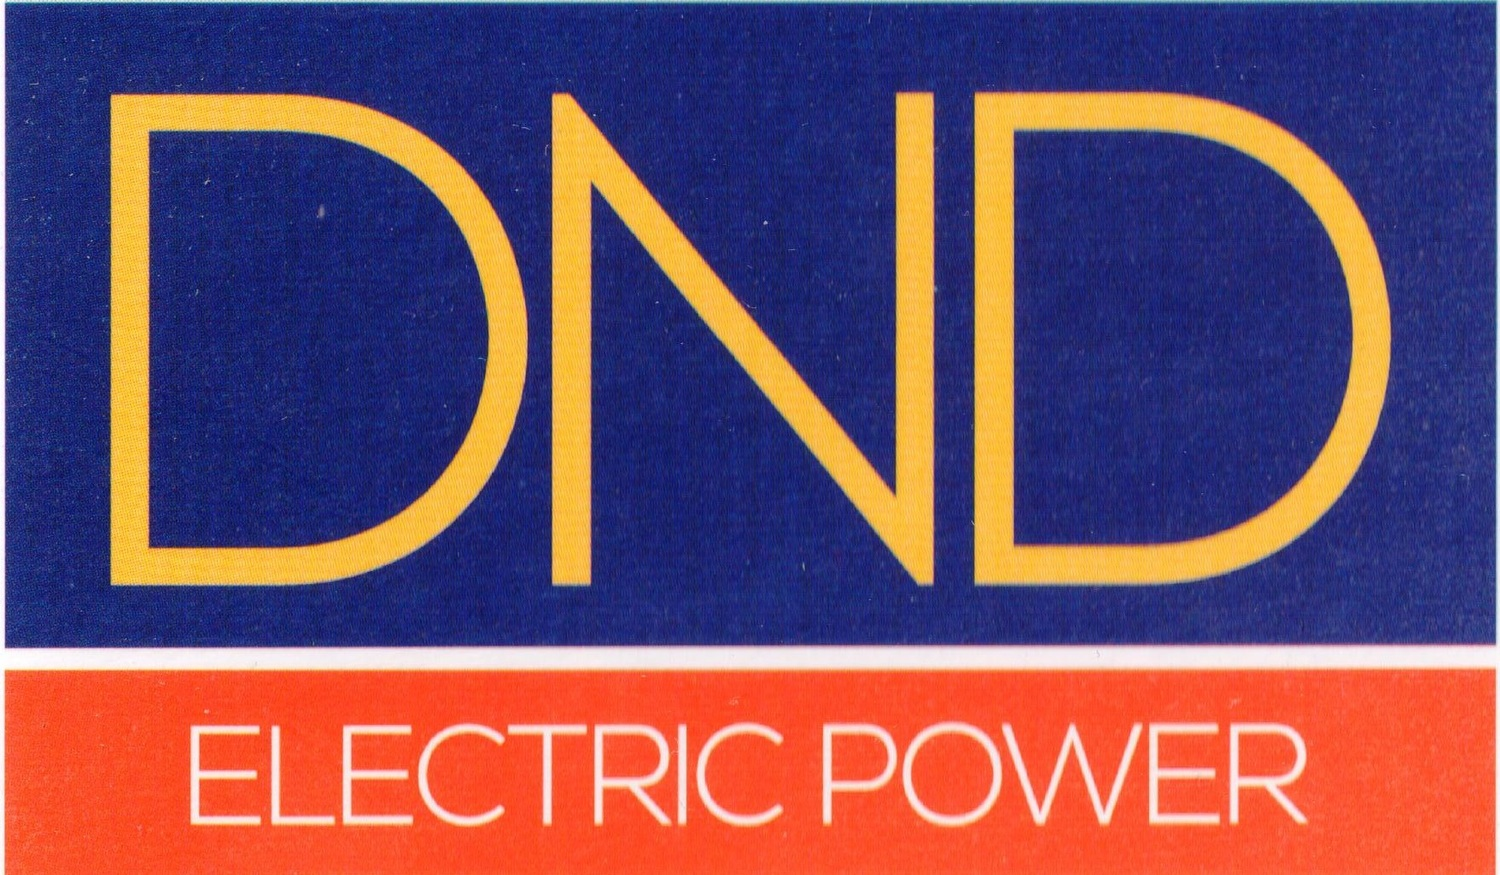 DND ELECTRIC POWER